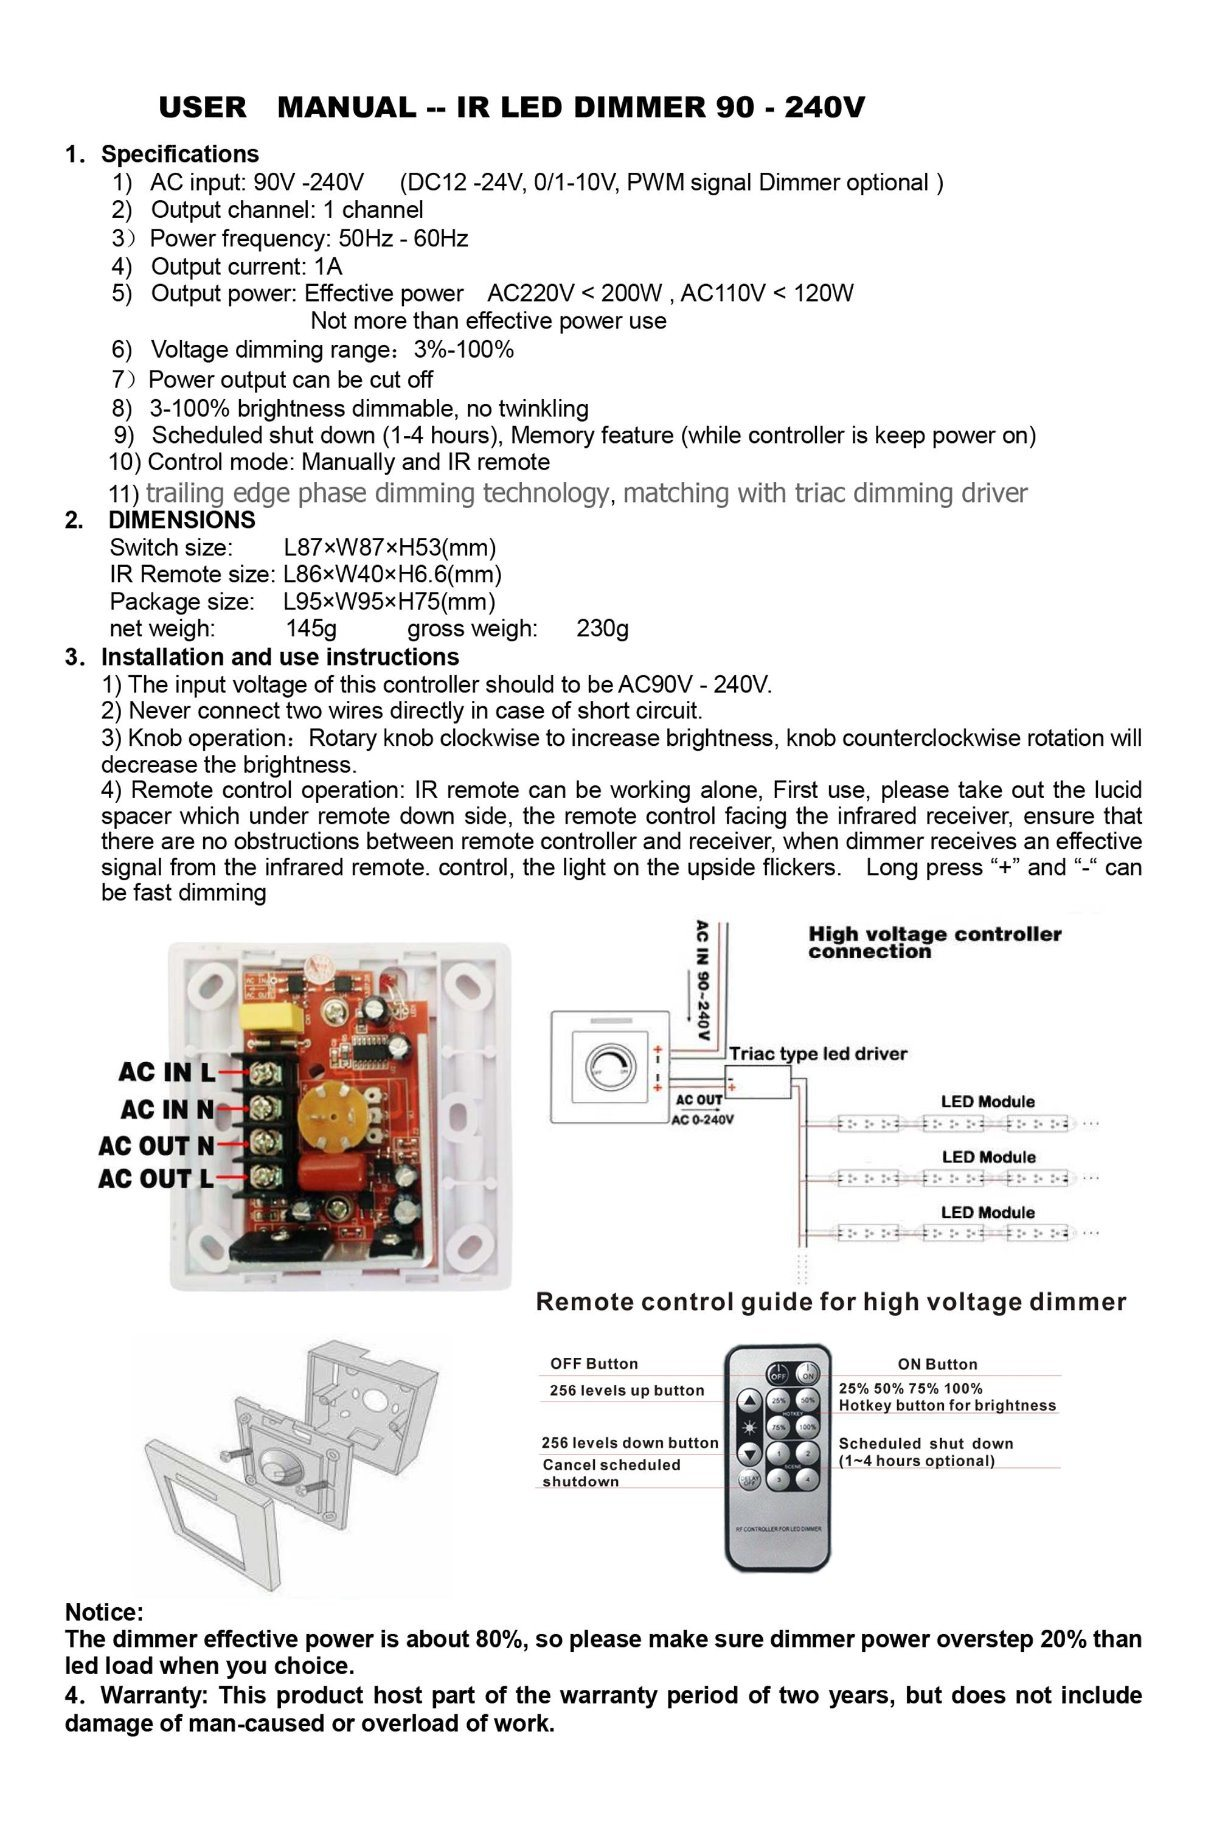 Brightness Dimmable Ir Led Light Dimmer Switch China Driver Automatic Lamp Circuit 2 Never Connect Two Wires Directly In Case Of Short 3 Knob Operationrotary Clockwise To Increase